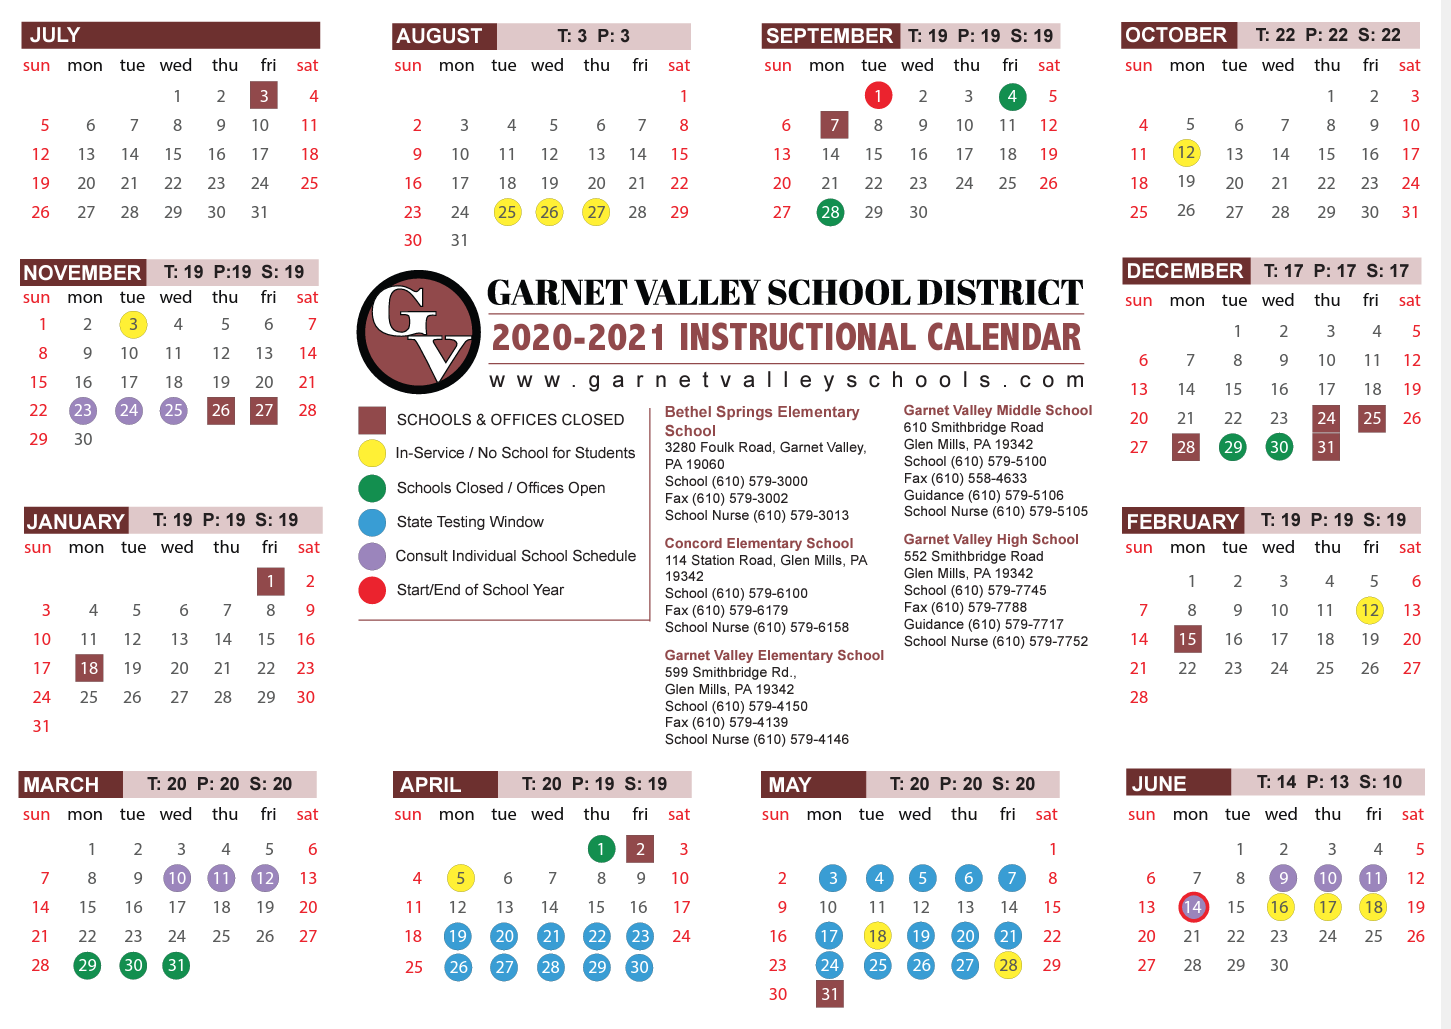 Important School Calendar Announcement - Garnet Valley